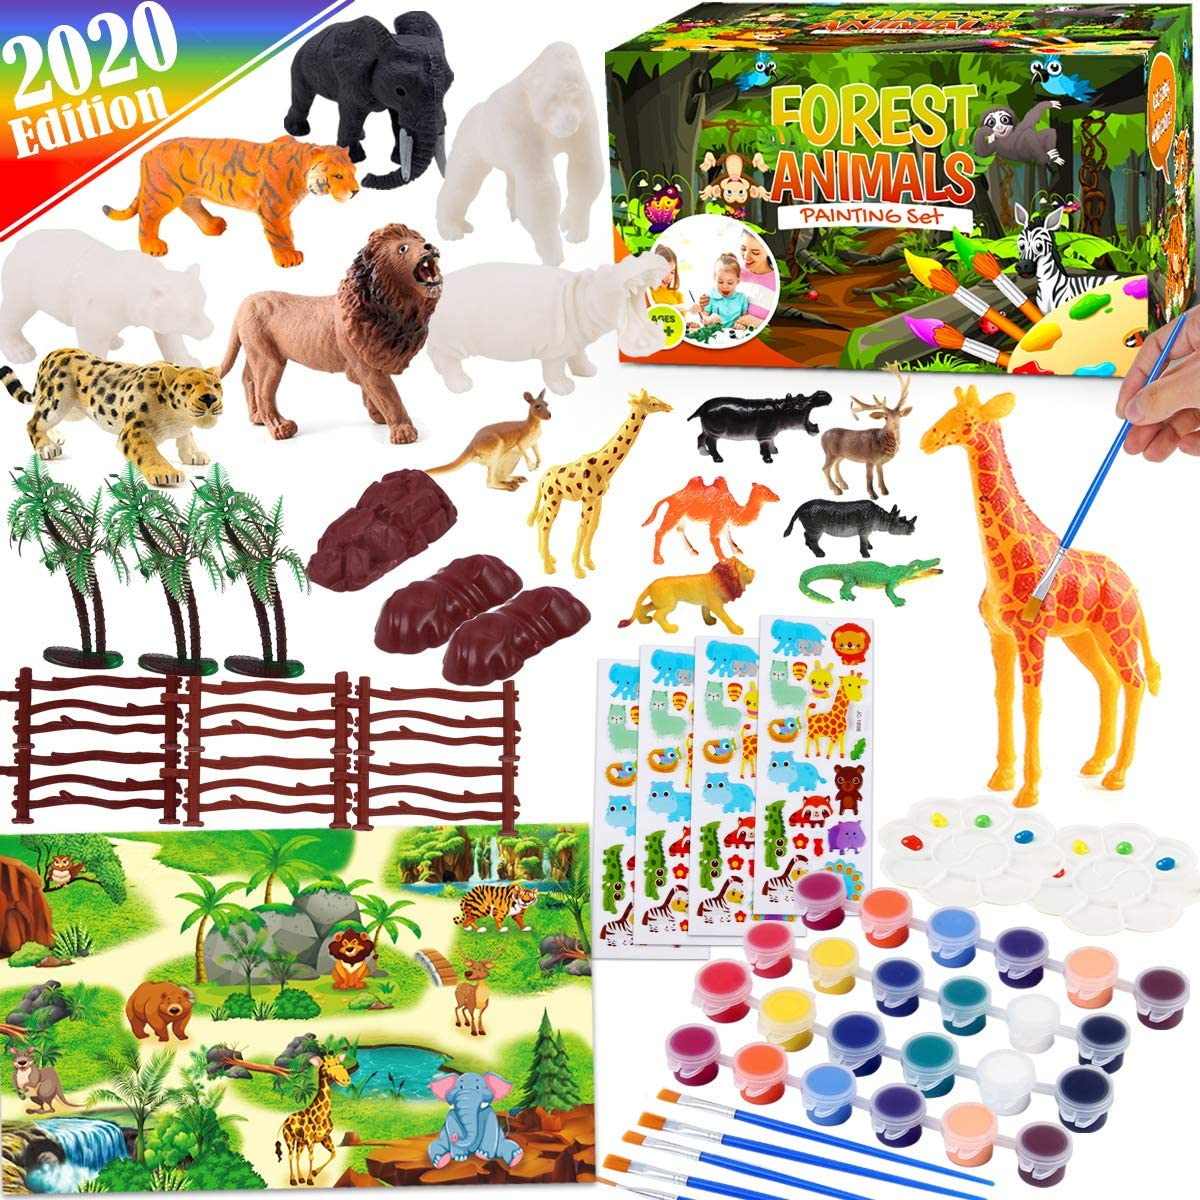 FunzBo Forest Animal Painting Art Set Kids Toys - Paint Your Own Animal Toys Educational Birthday Gifts DIY Arts and Crafts Paint Supplies for Toddlers Kids Toys Girls Boys Ages 4 5 6 7 8 + Years Old